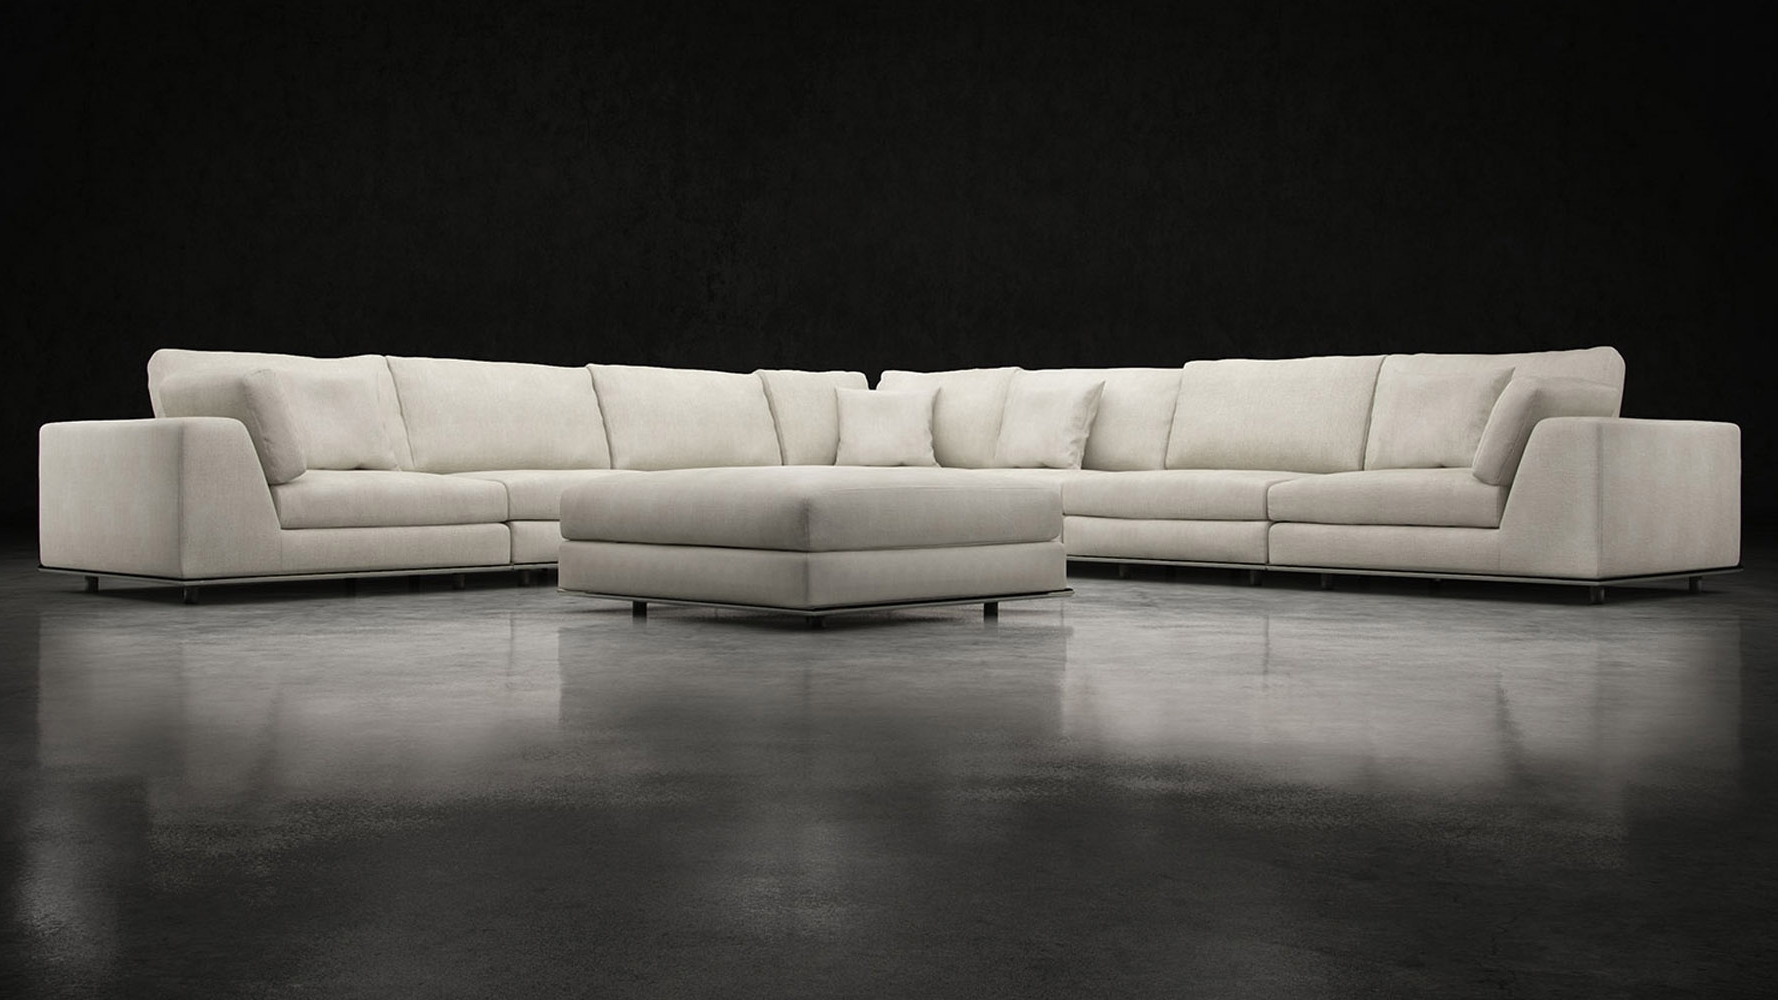 Joining Hardware Sectional Sofas for Well-liked Furniture : 5060 Recliner Sectional Sofa Costco $699 Corner Couch